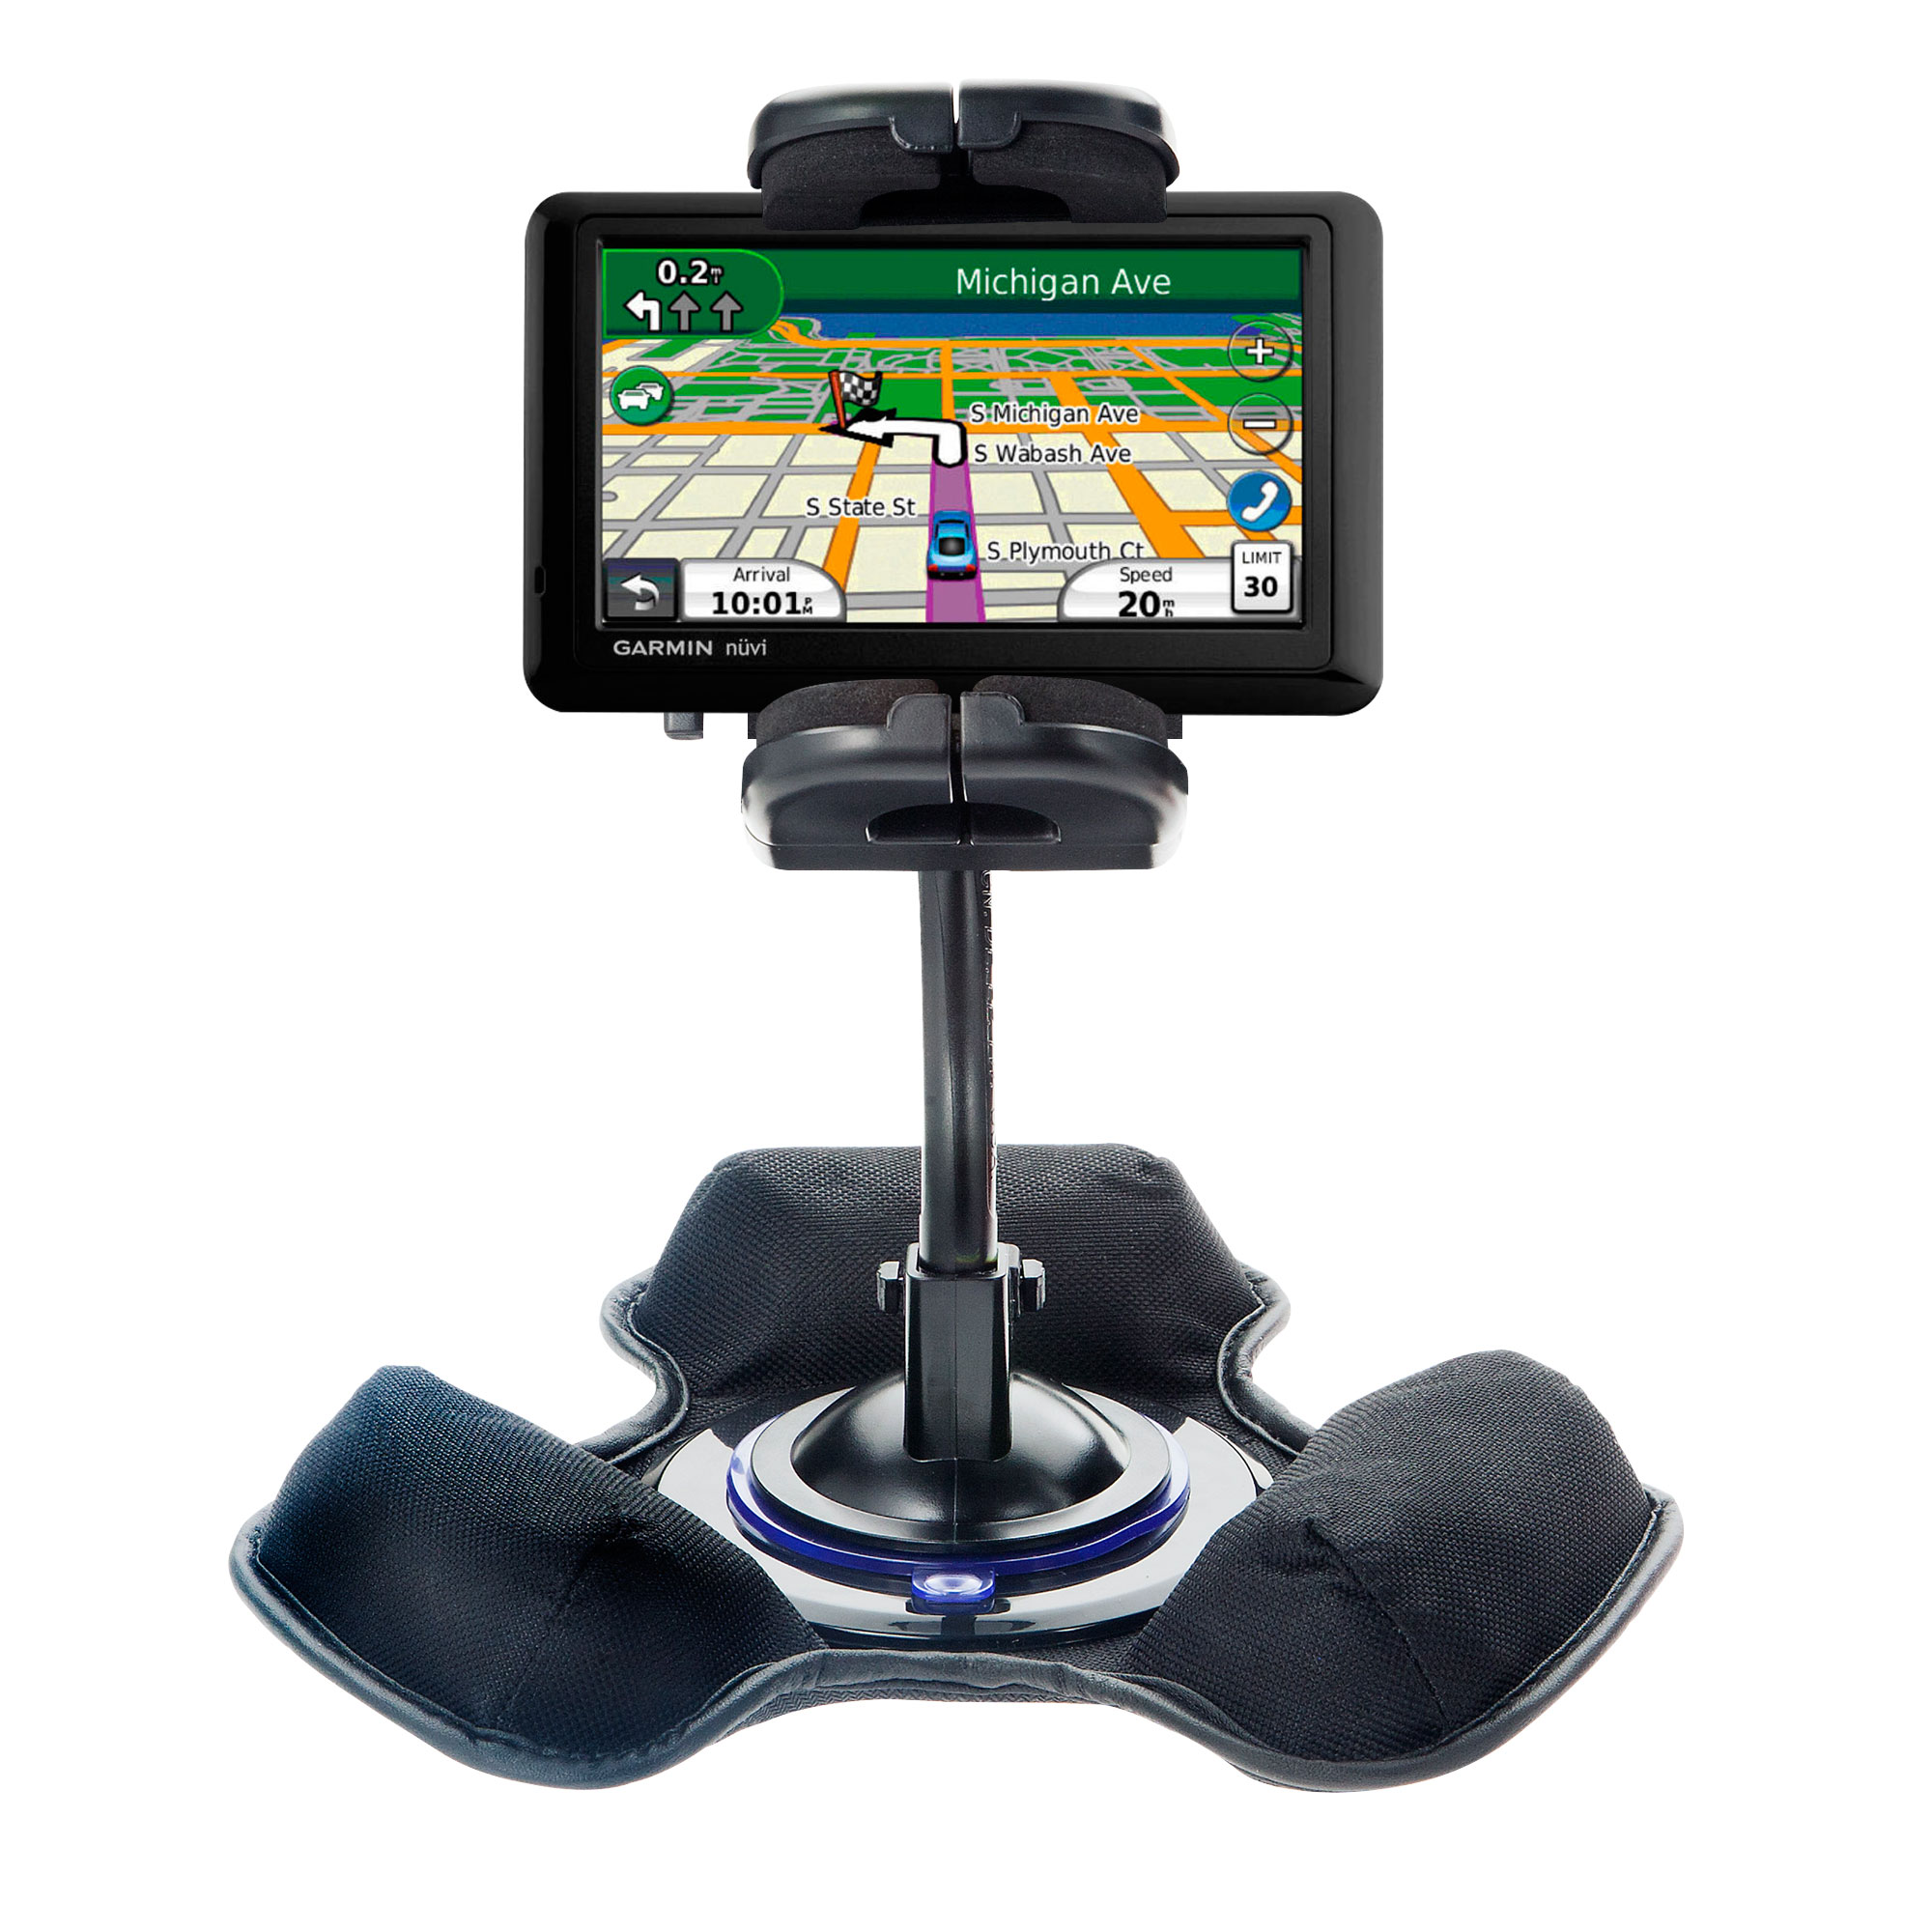 Car / Truck Vehicle Holder Mounting System for Garmin Nuvi 2350 Includes Unique Flexible Windshield Suction and Universal Dashboard Mount Options